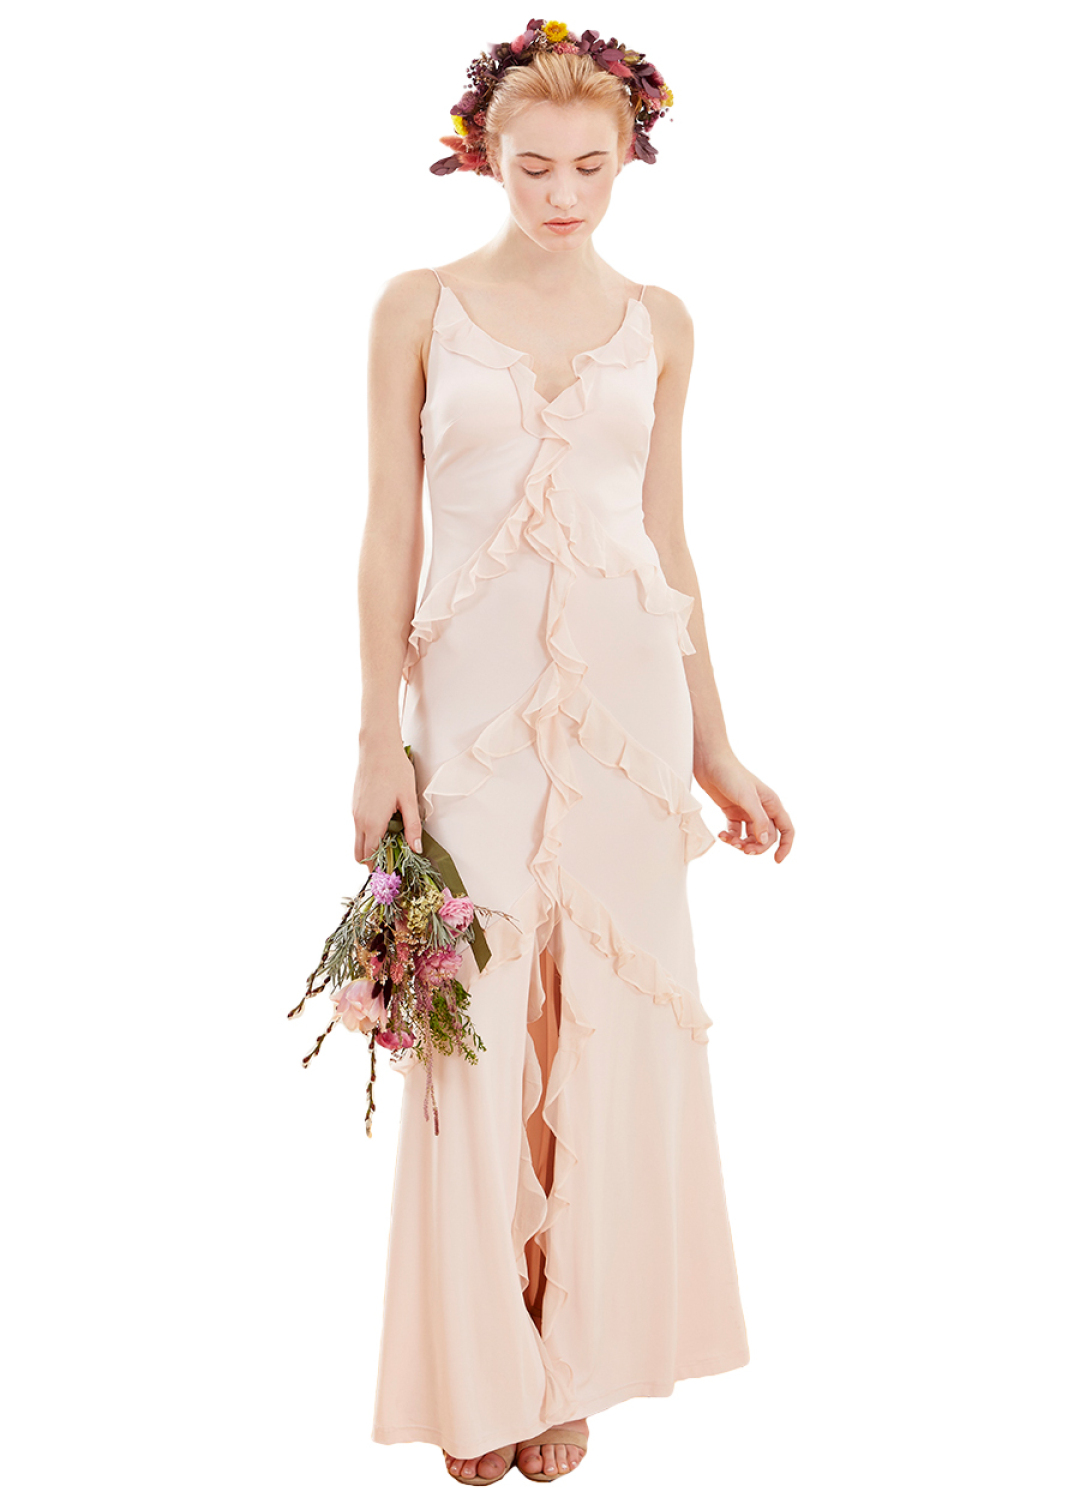 AIDAN MATTOX - Powder Pink Evening Gown With Ruffle Details | Davet ...